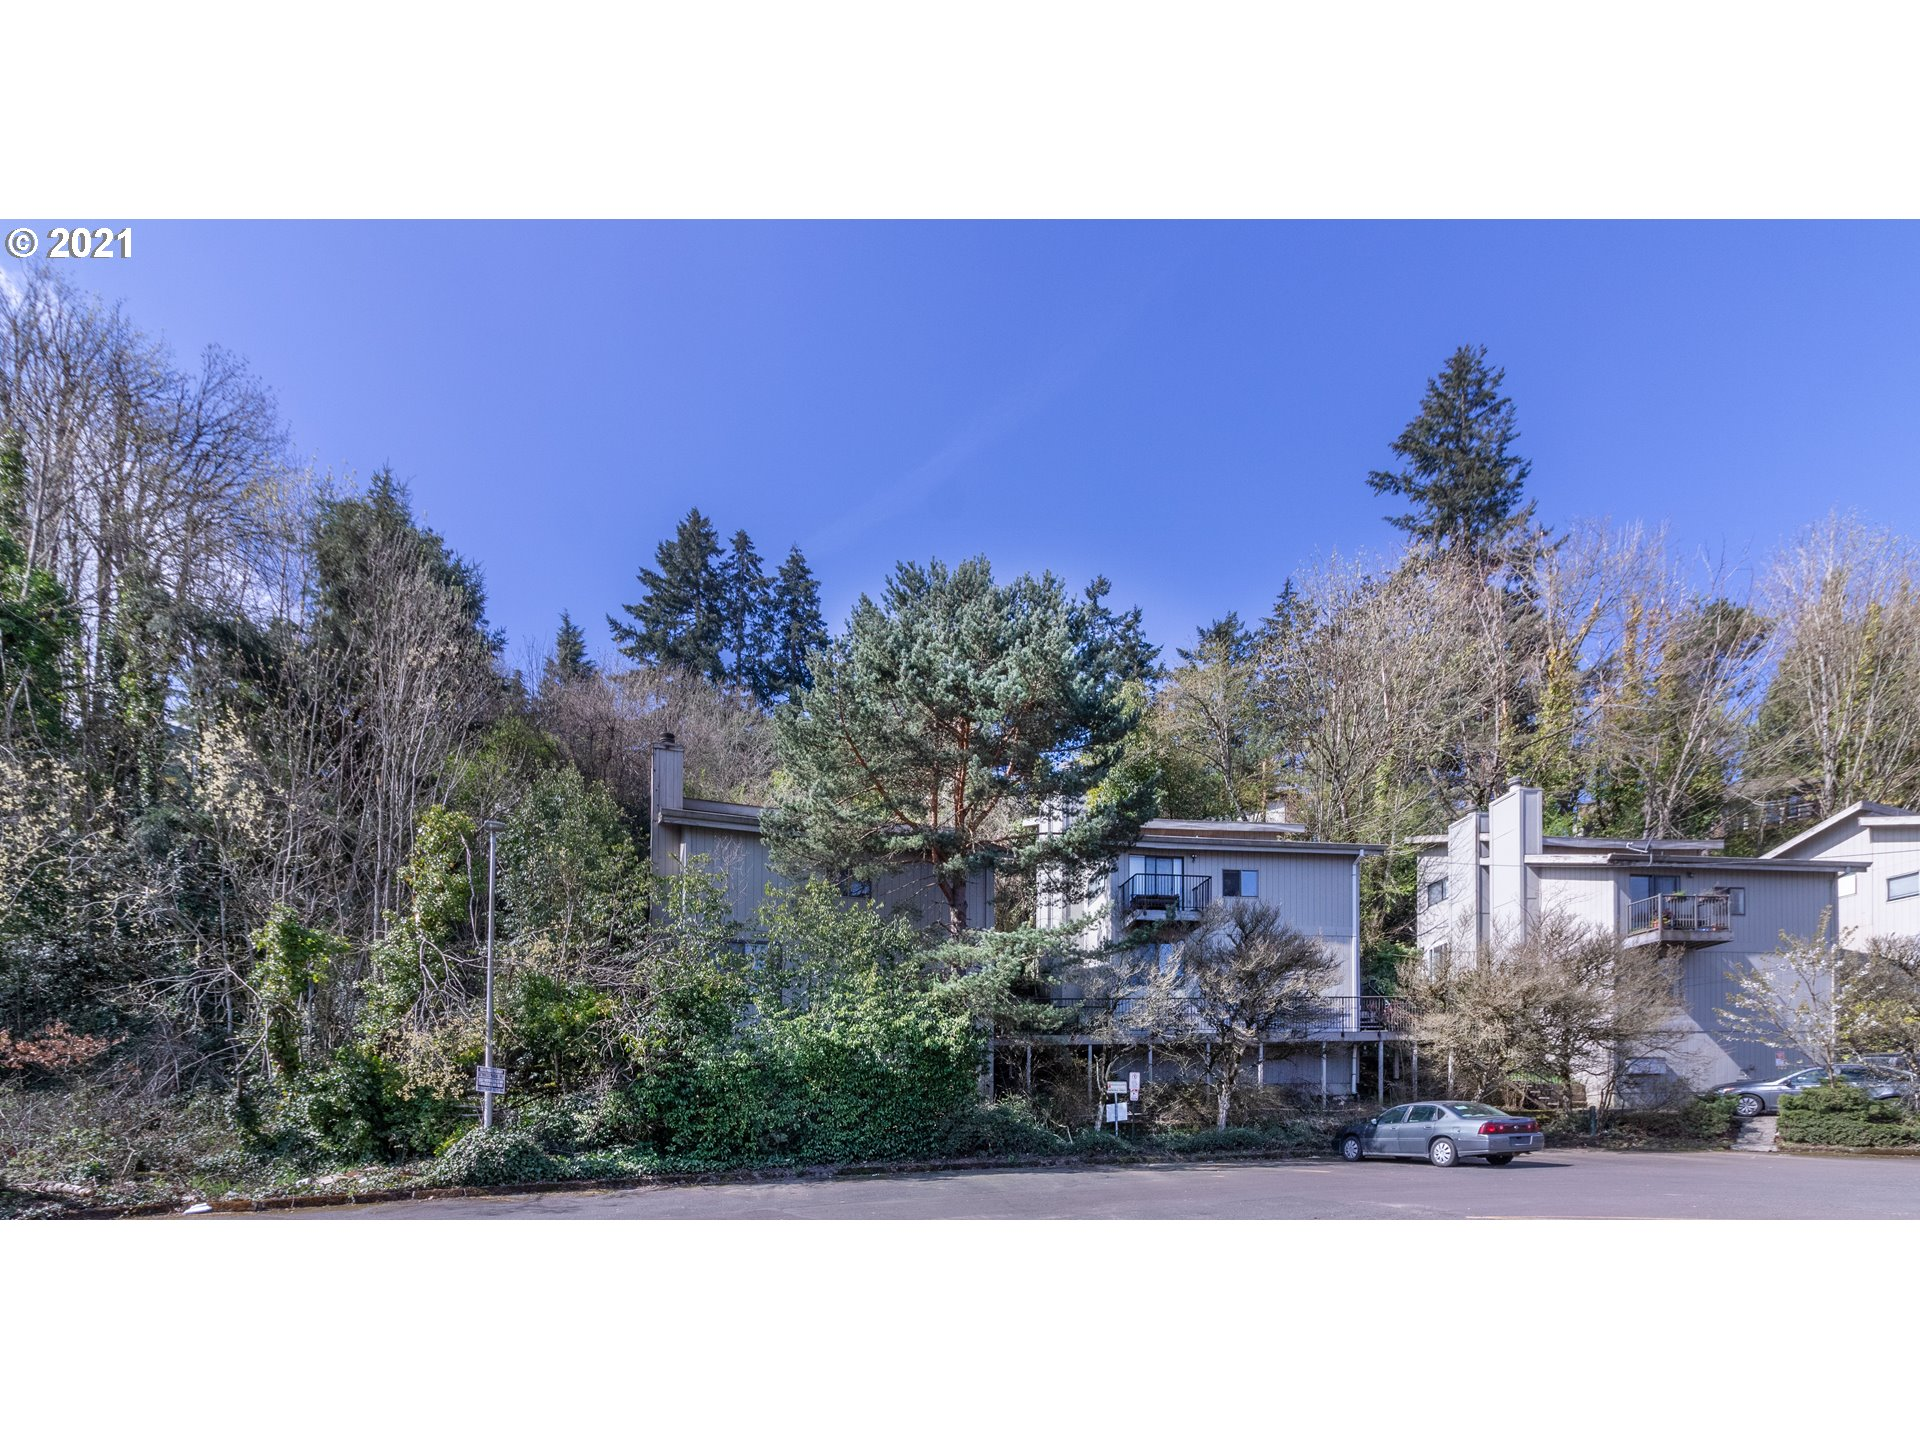 Outstanding location! Minutes to downtown, Walk to Hillsdale, Multnomah Village, Schools, Restaurants, shopping, Custer Park. Close to bus line. Set back in the trees. Only 2 condos per building, no one above or below. Only 8 units. Laminate floors, stainless steel appliances, Master has vaulted ceilings and great light! Tiled bath. 1 assigned parking space. Washer and dryer. Wilson High